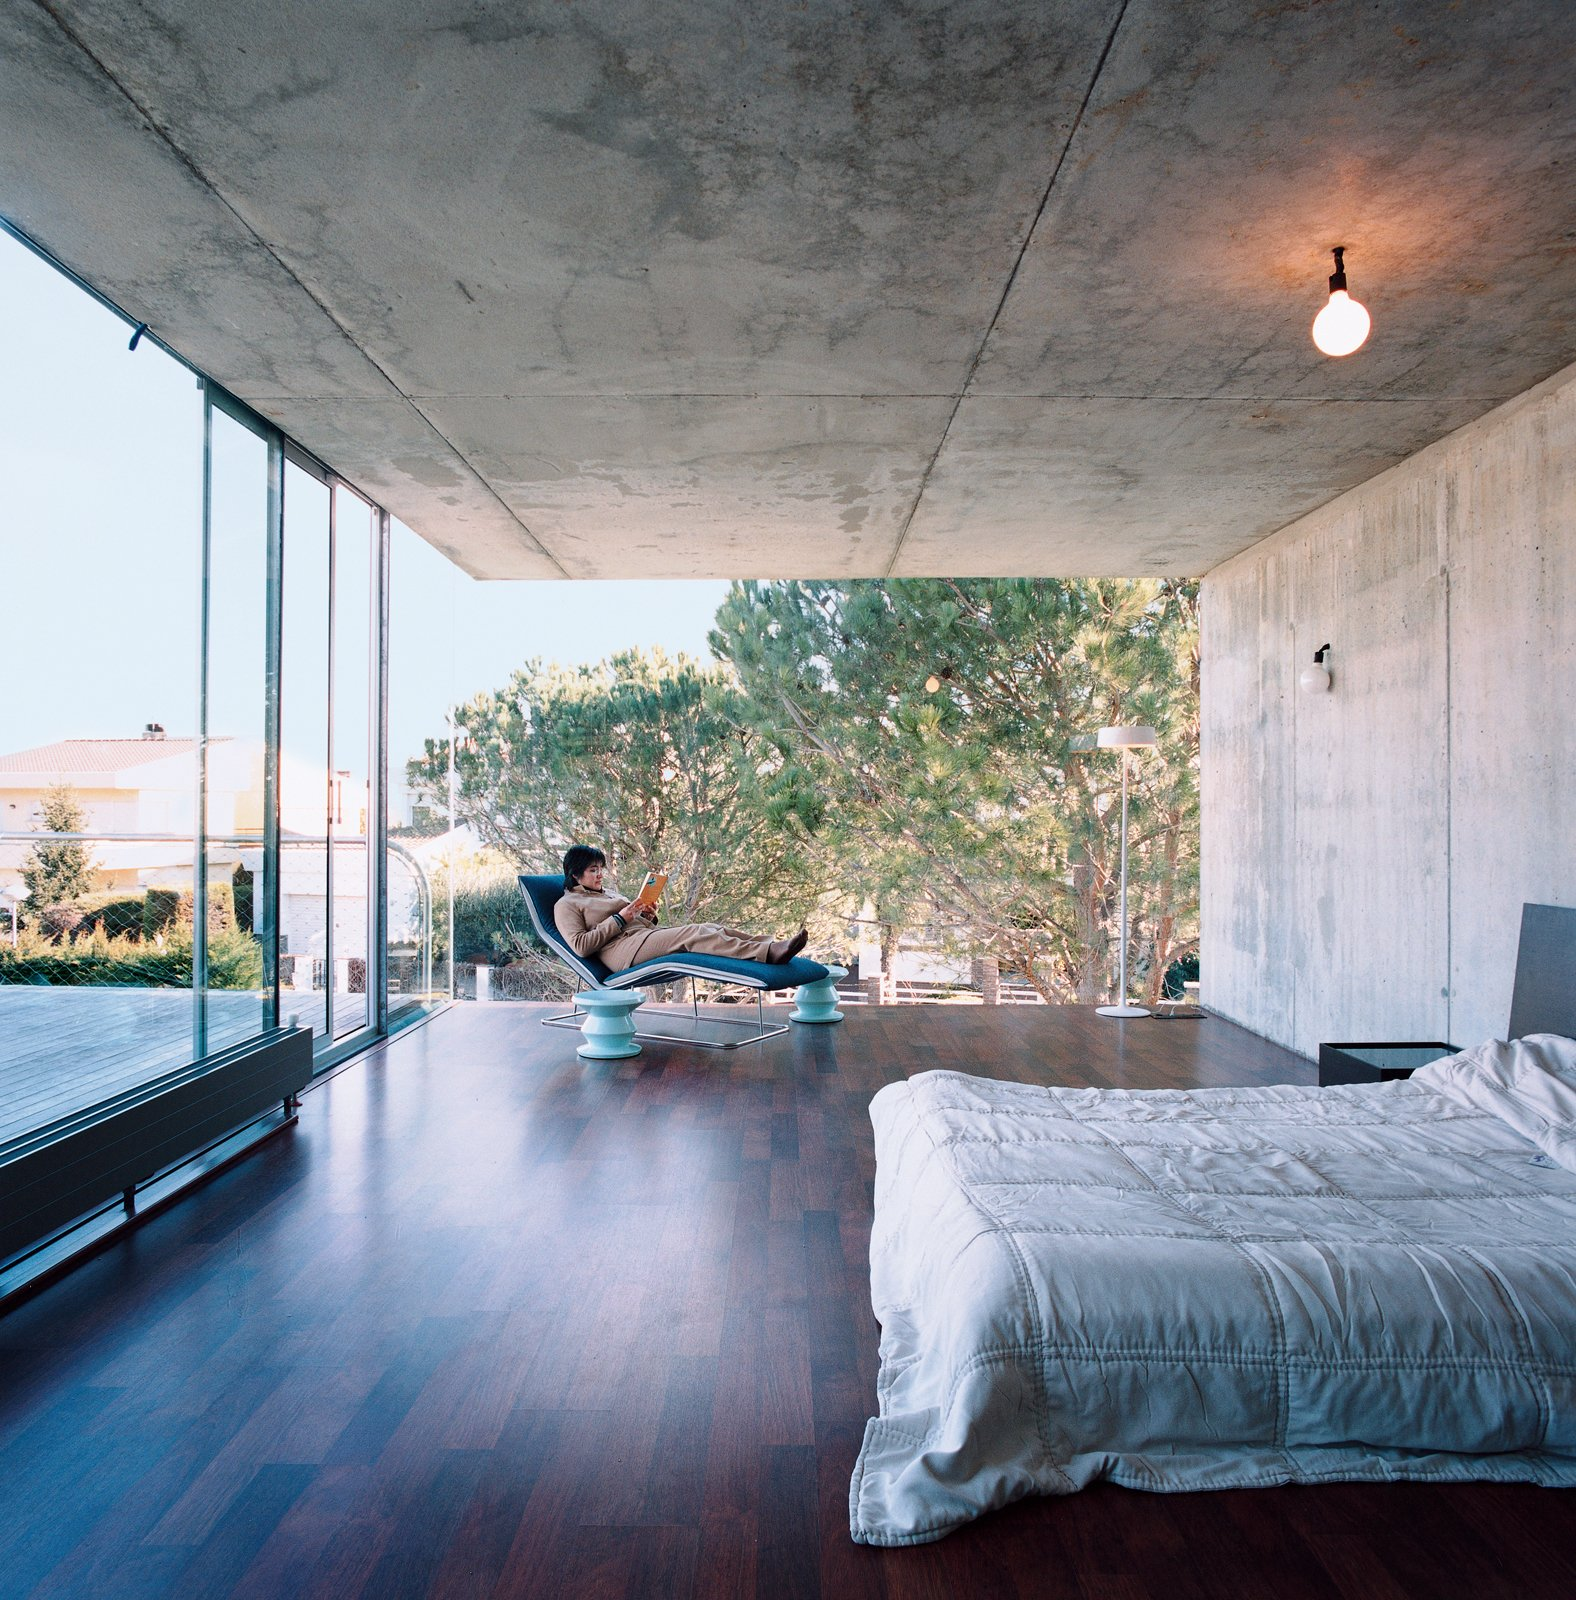 Giovanna de Uzin Fontecha relaxes in the master bedroom on a Leaf chaise by Claesson-Koivisto-Rune for Living Divani. Tagged: Bedroom, Bed, Chair, Ceiling Lighting, and Dark Hardwood Floor.  Striking Exposed Concrete Interiors by William Harrison from Suburban House of the Future by Cloud9